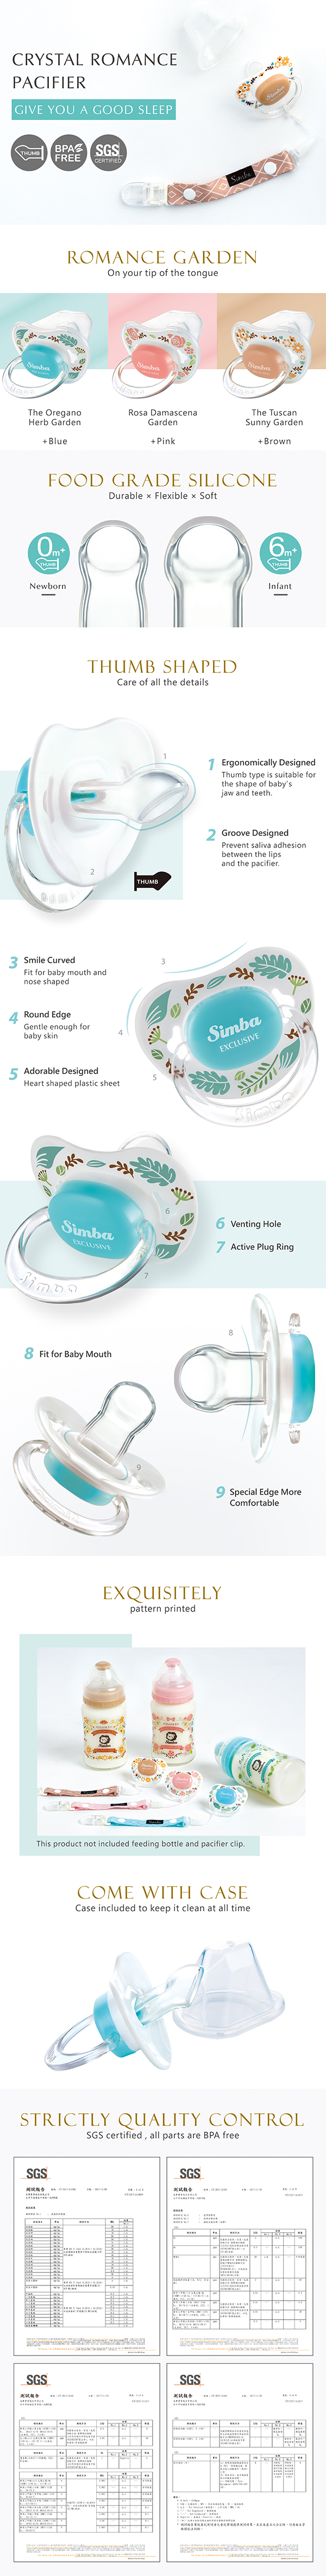 Simba Pacifier With Case Thumb Shaped Romance Pink 6months+